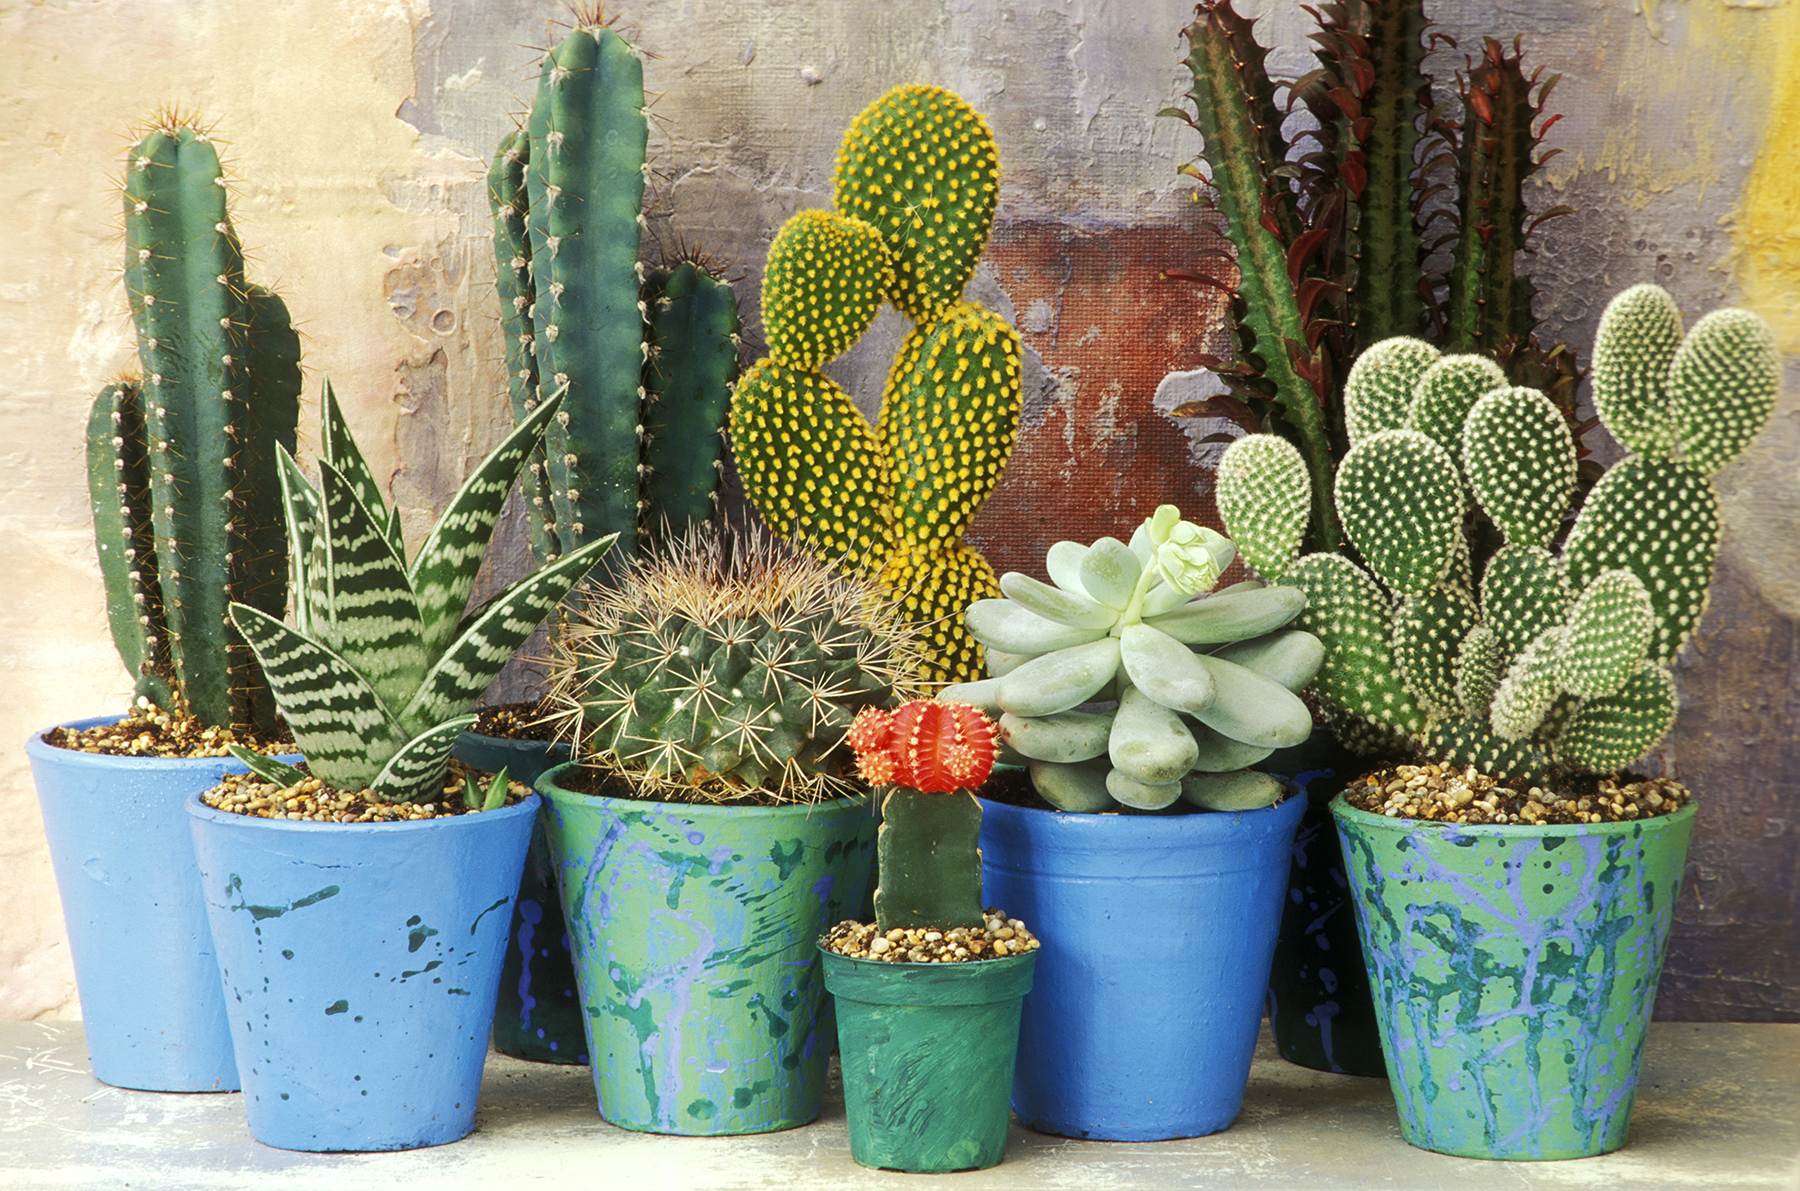 In an Overly-Heated Room: Cacti and Desert Plants